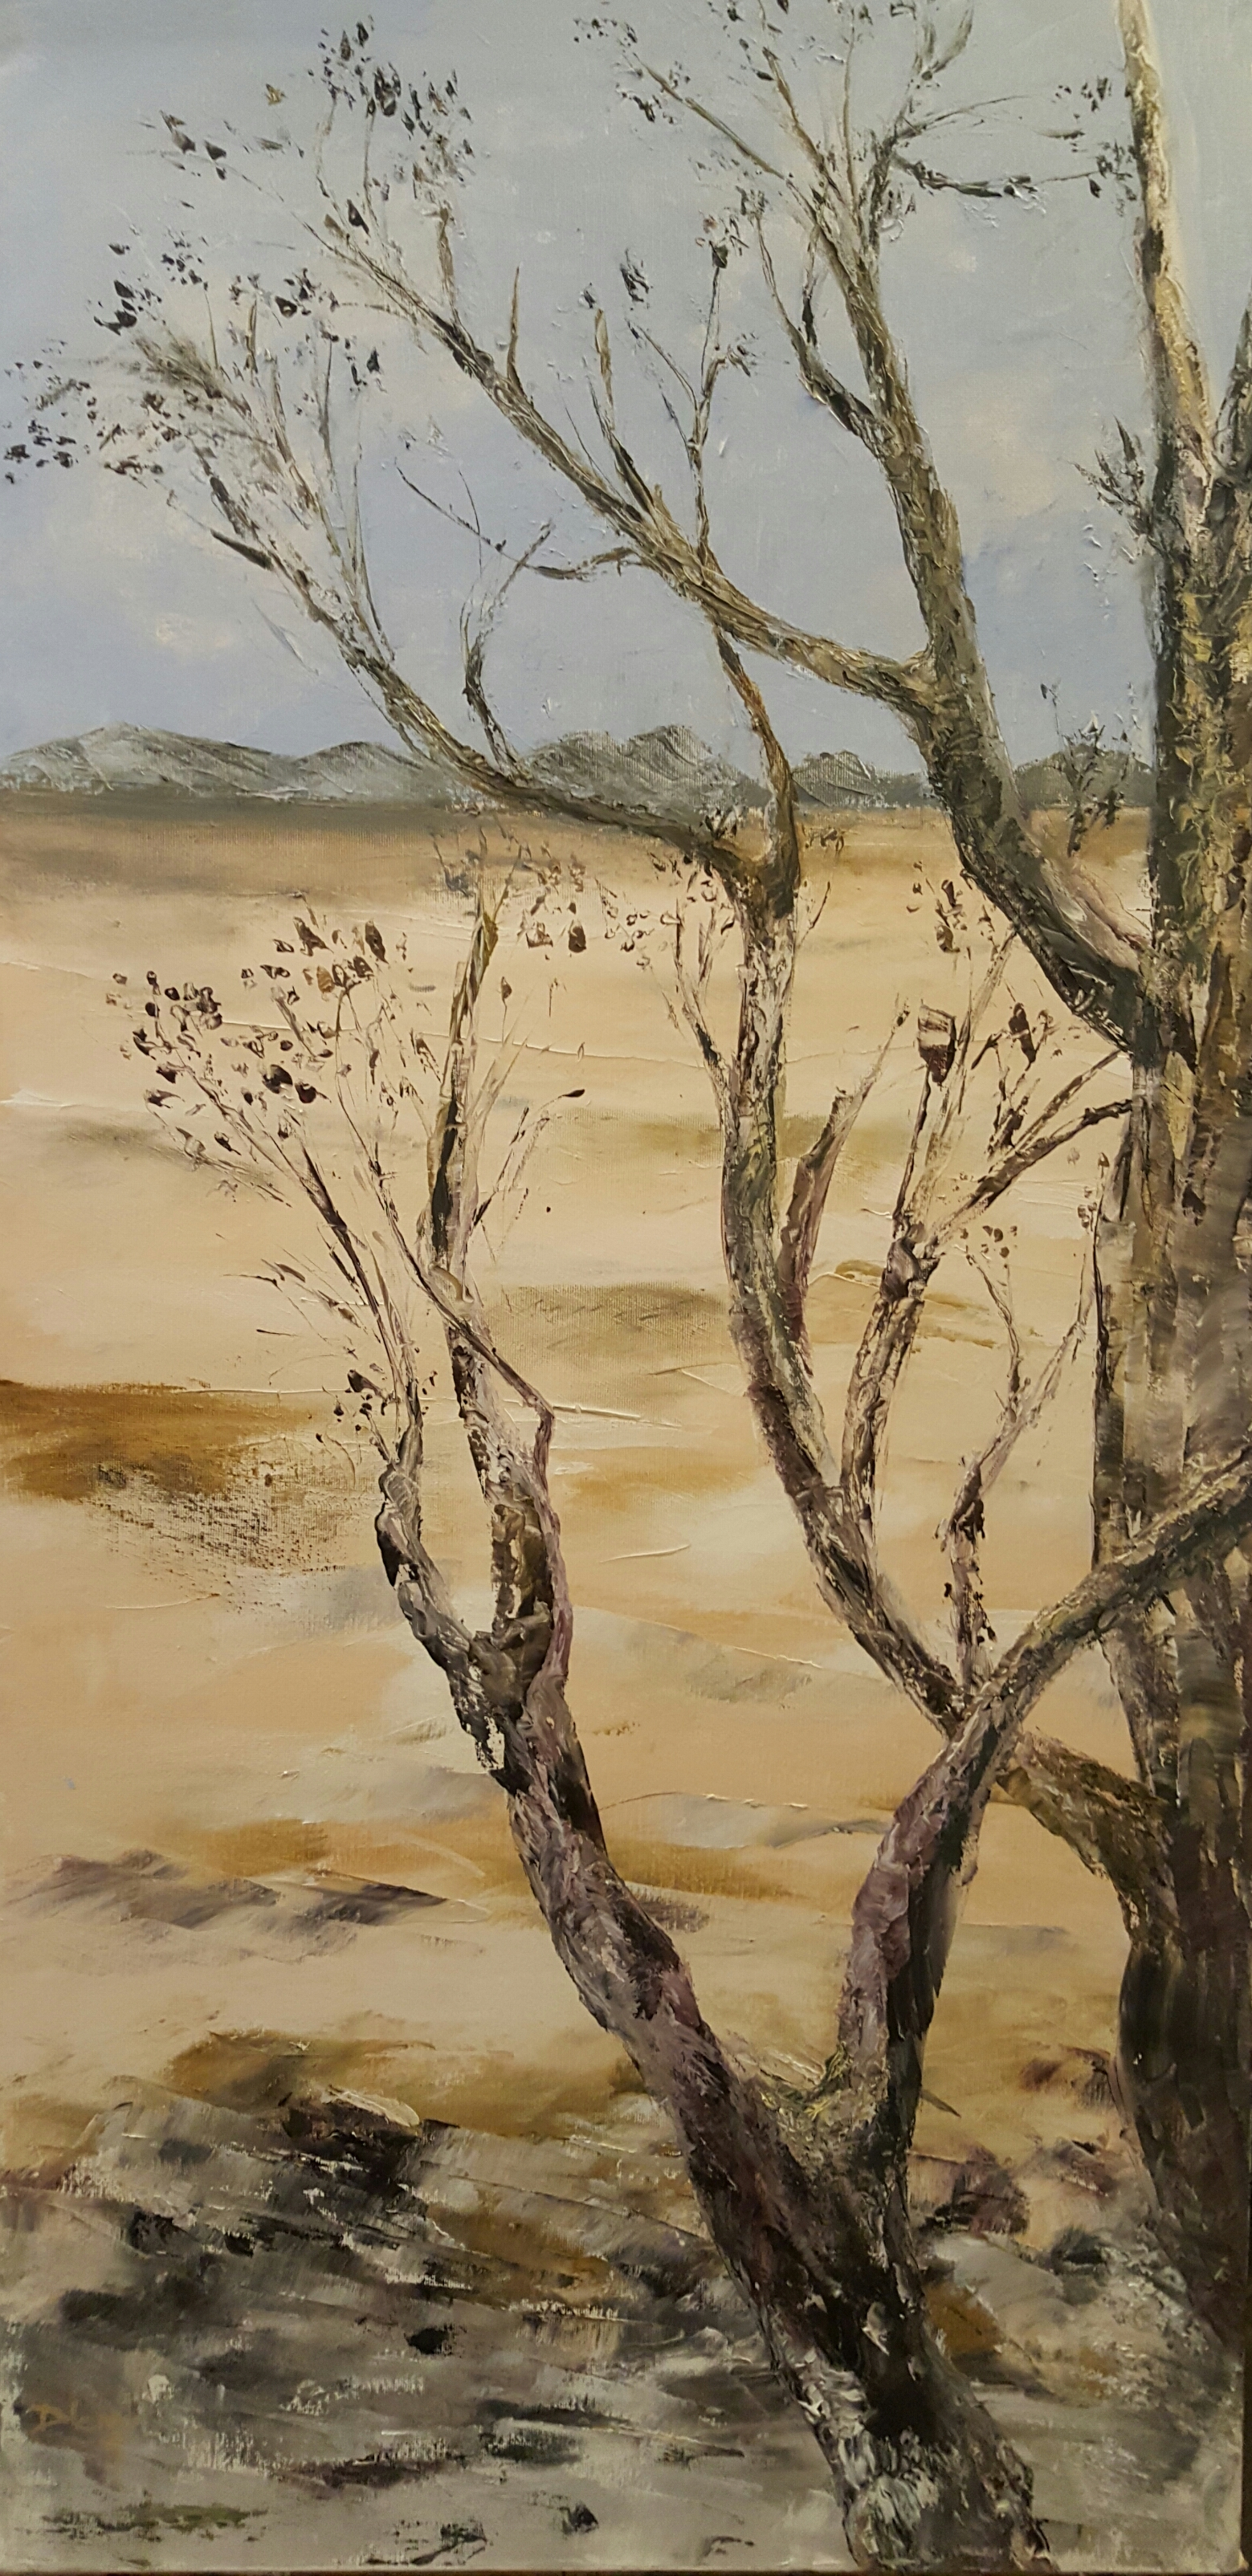 The arid tree sold